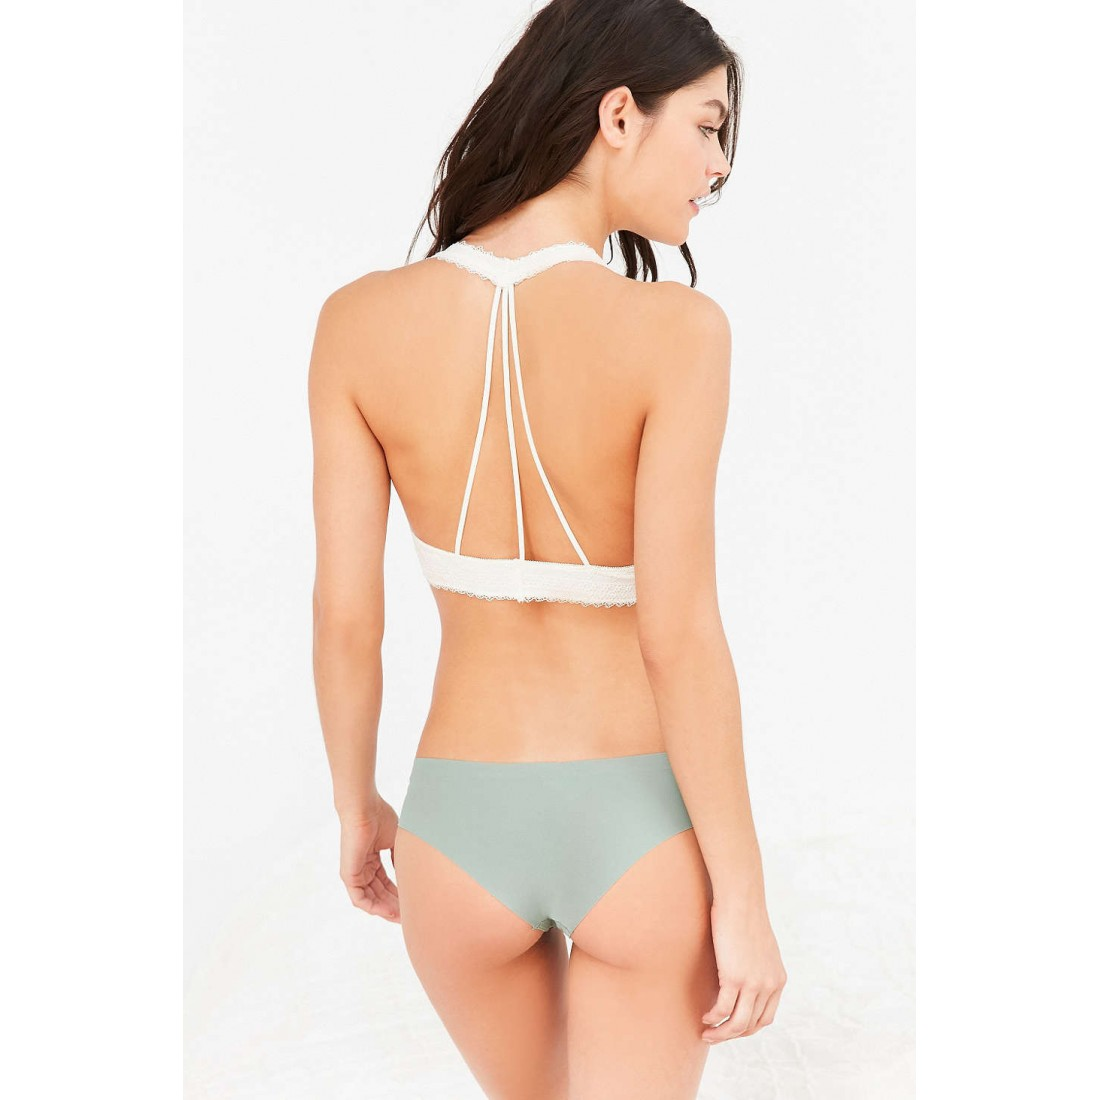 0fe1455f76 Out From Under Strappy Back Halter Bra UO36837490 IVORY